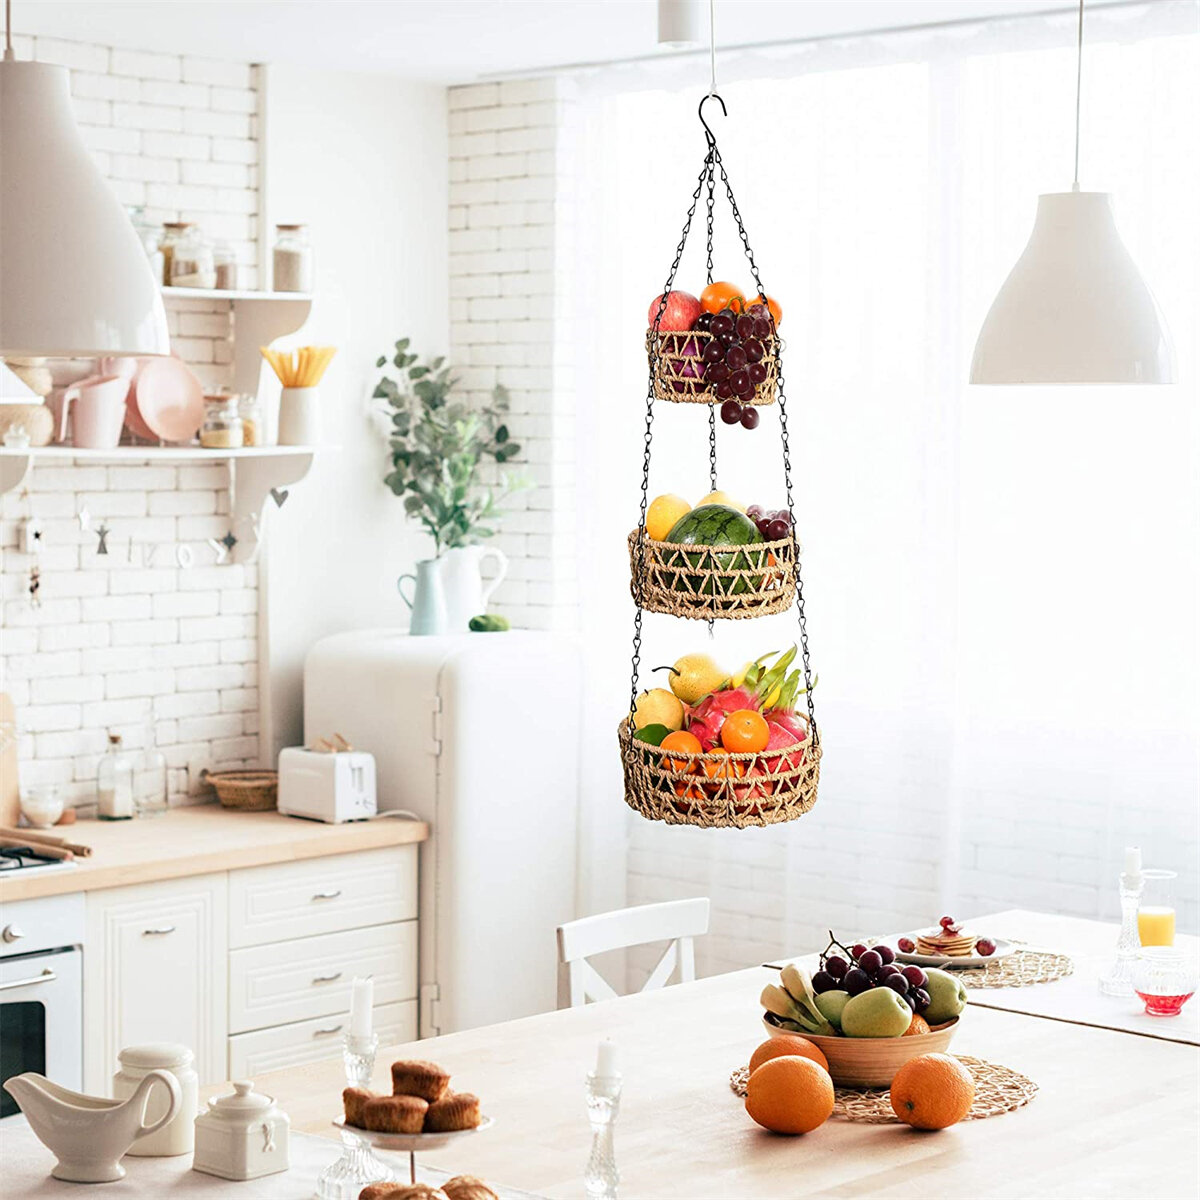 Bayou Breeze 3 Tier Hanging Fruit Basket Paper Rope Woven Vegetable Storage And Fruit Organizer Kitchen Countertop Space Saver Chain Adjustable In Height Wayfair